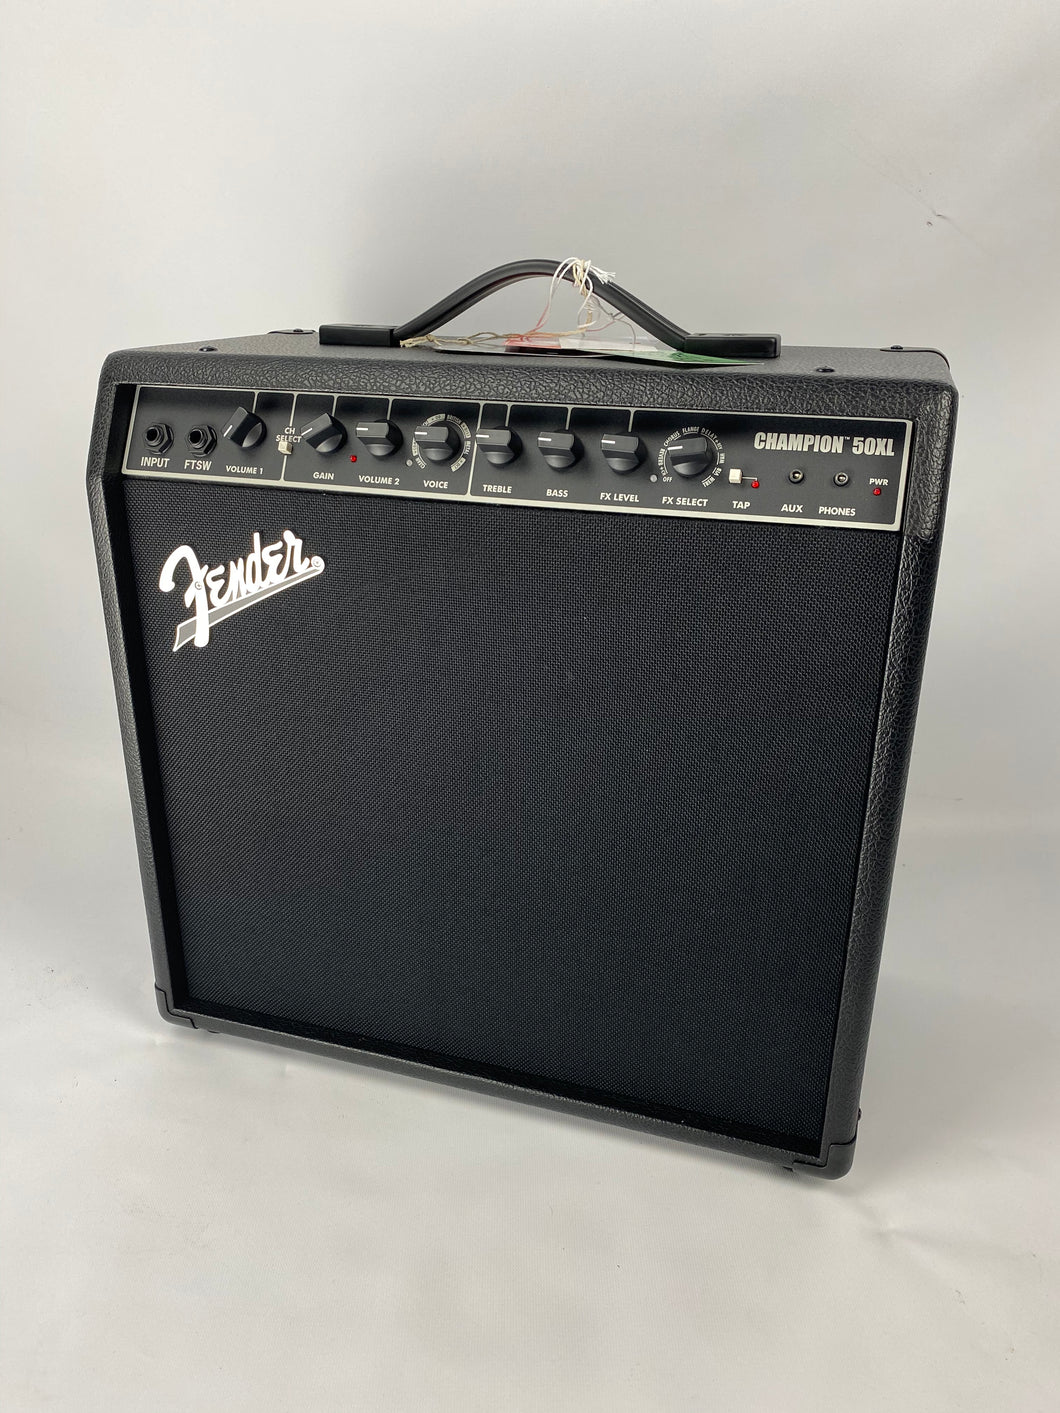 Fender Champion XL50 Guitar Amp